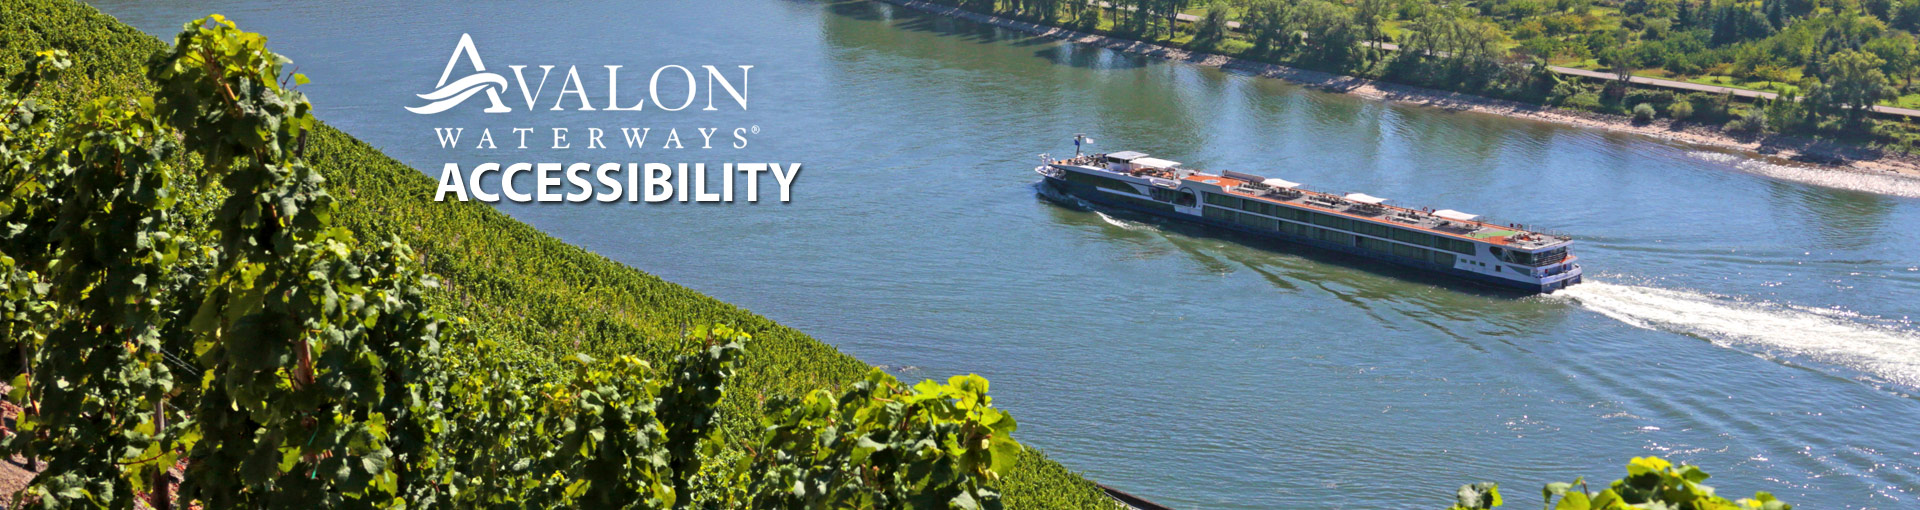 Avalon Waterways Accessibility